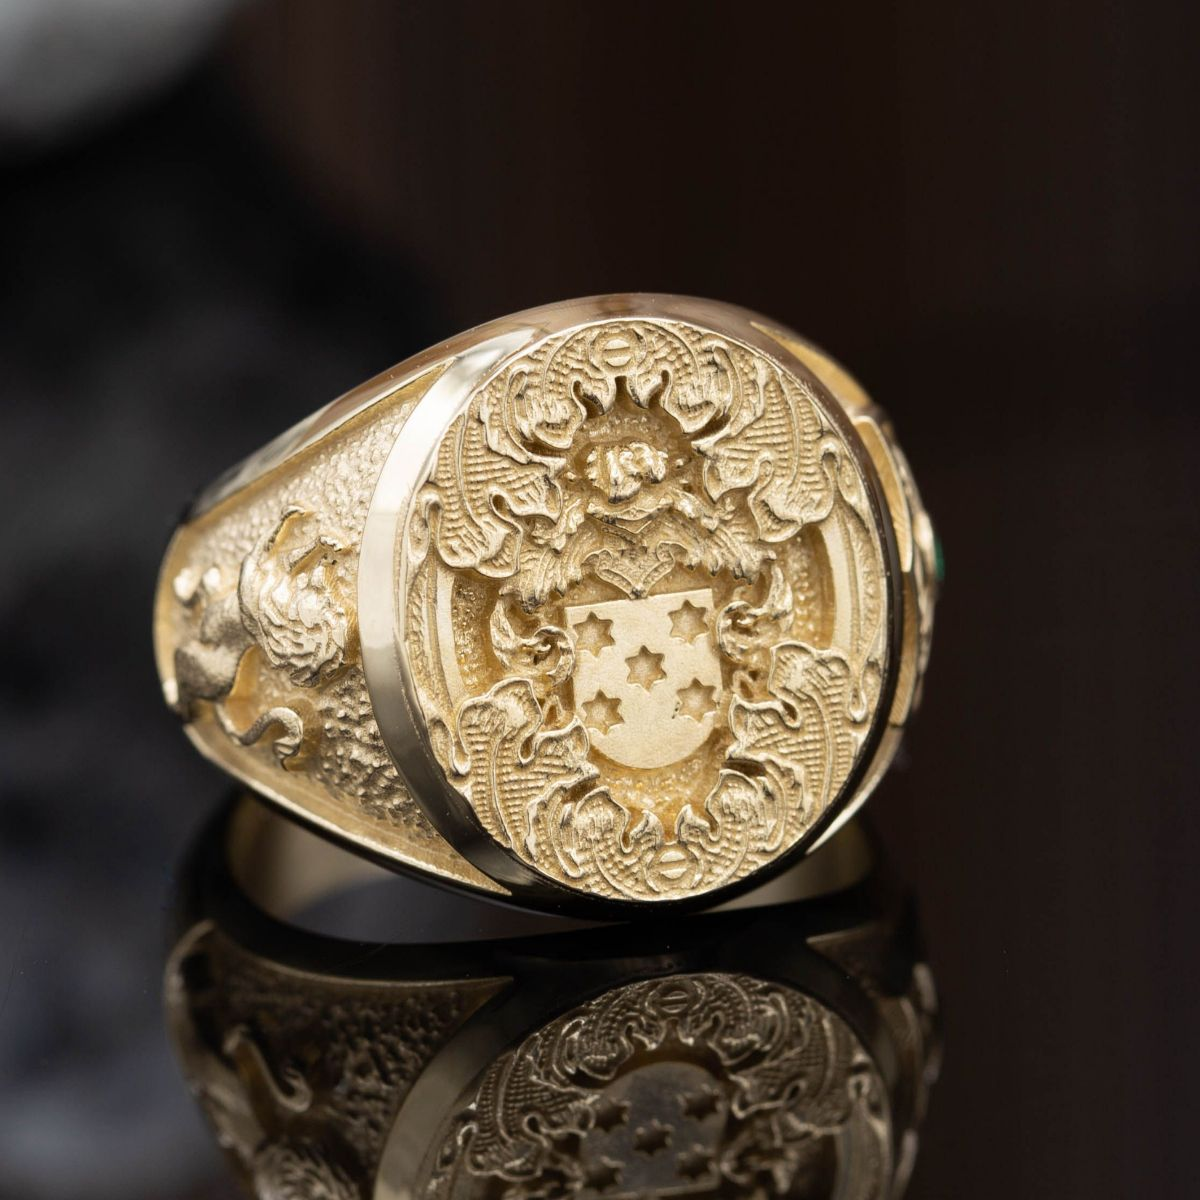 custom family crest rings design your own coat of arms. Black Bedroom Furniture Sets. Home Design Ideas